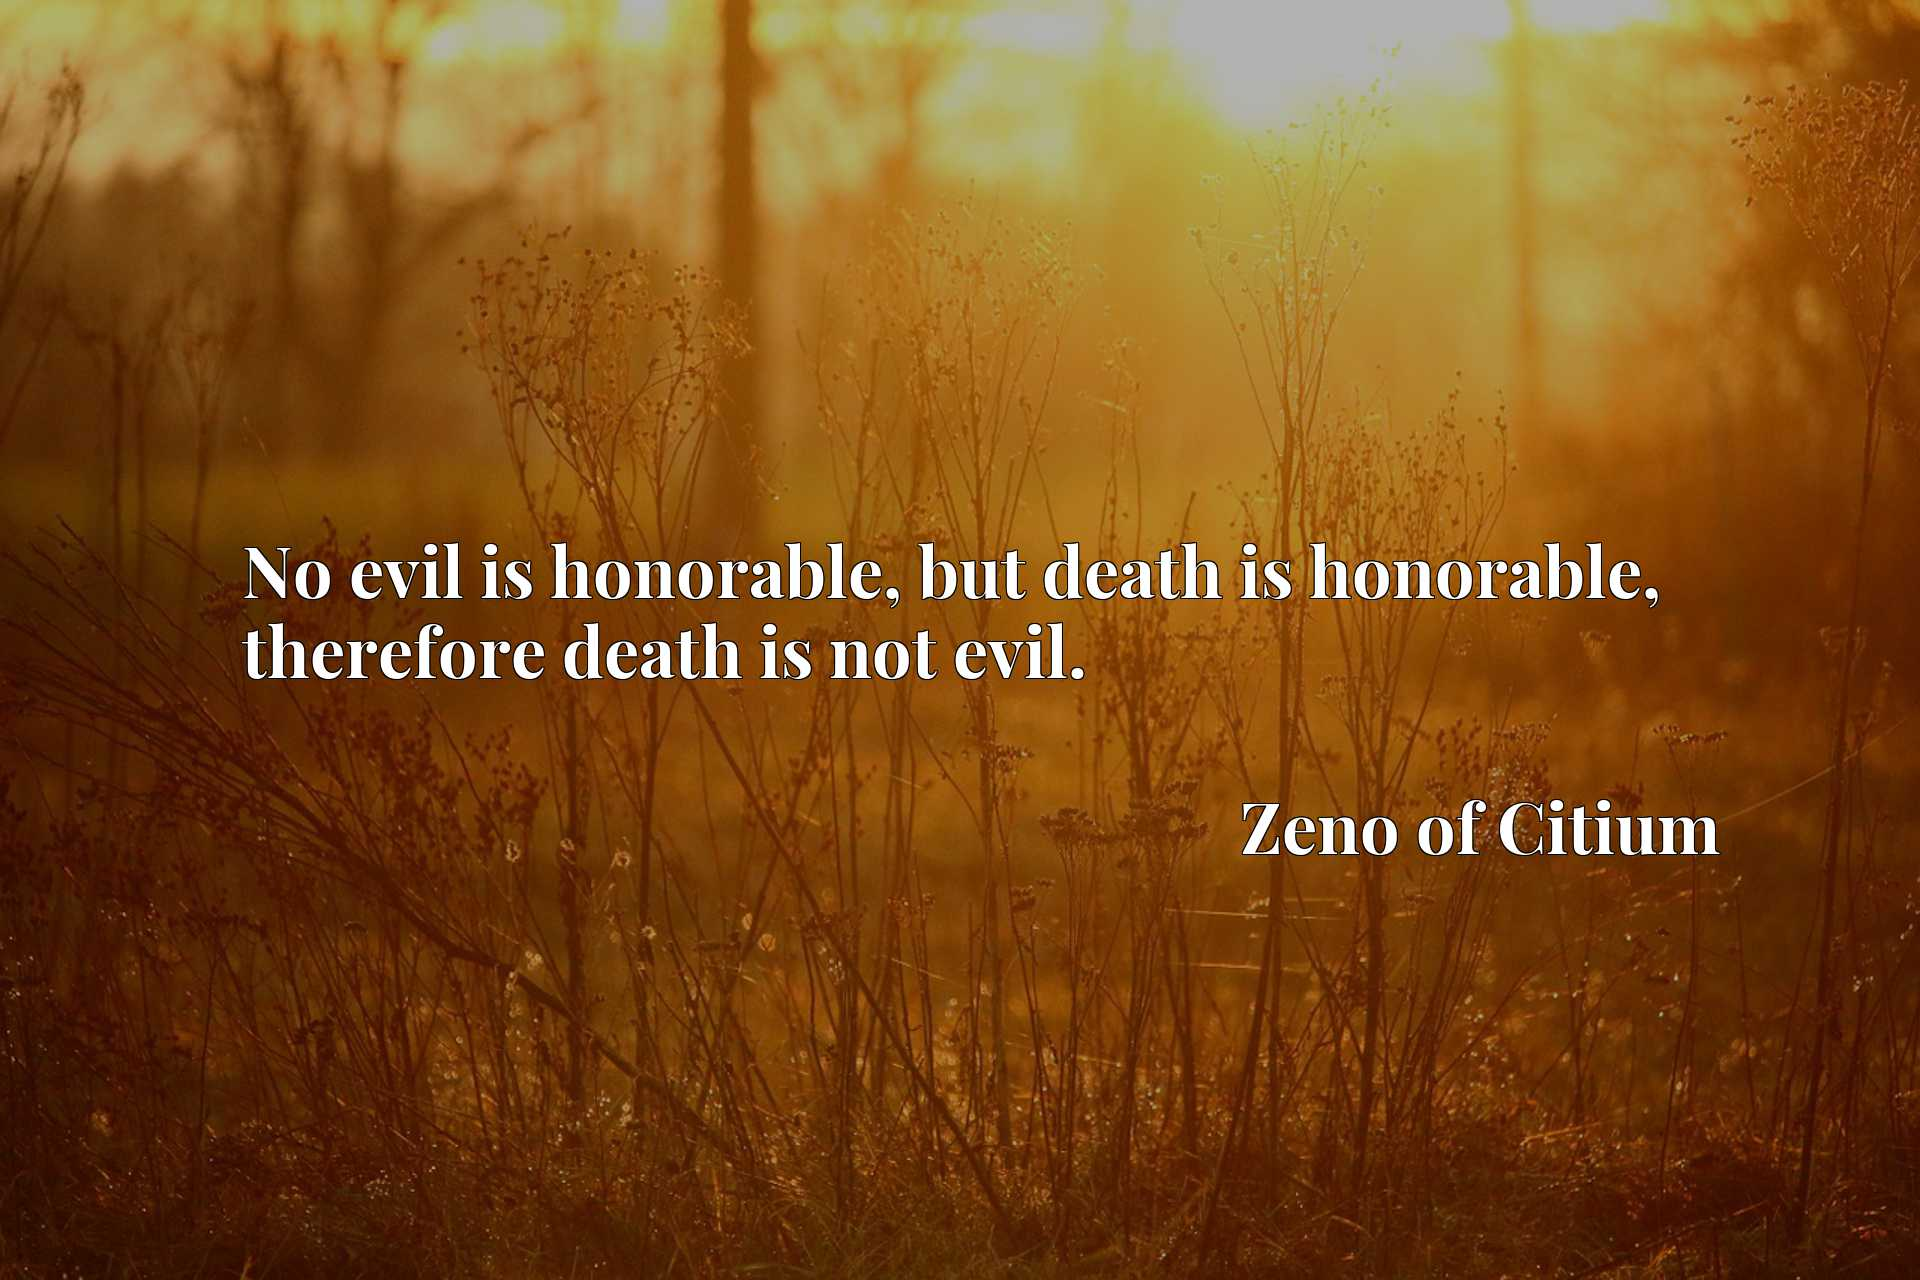 No evil is honorable, but death is honorable, therefore death is not evil.